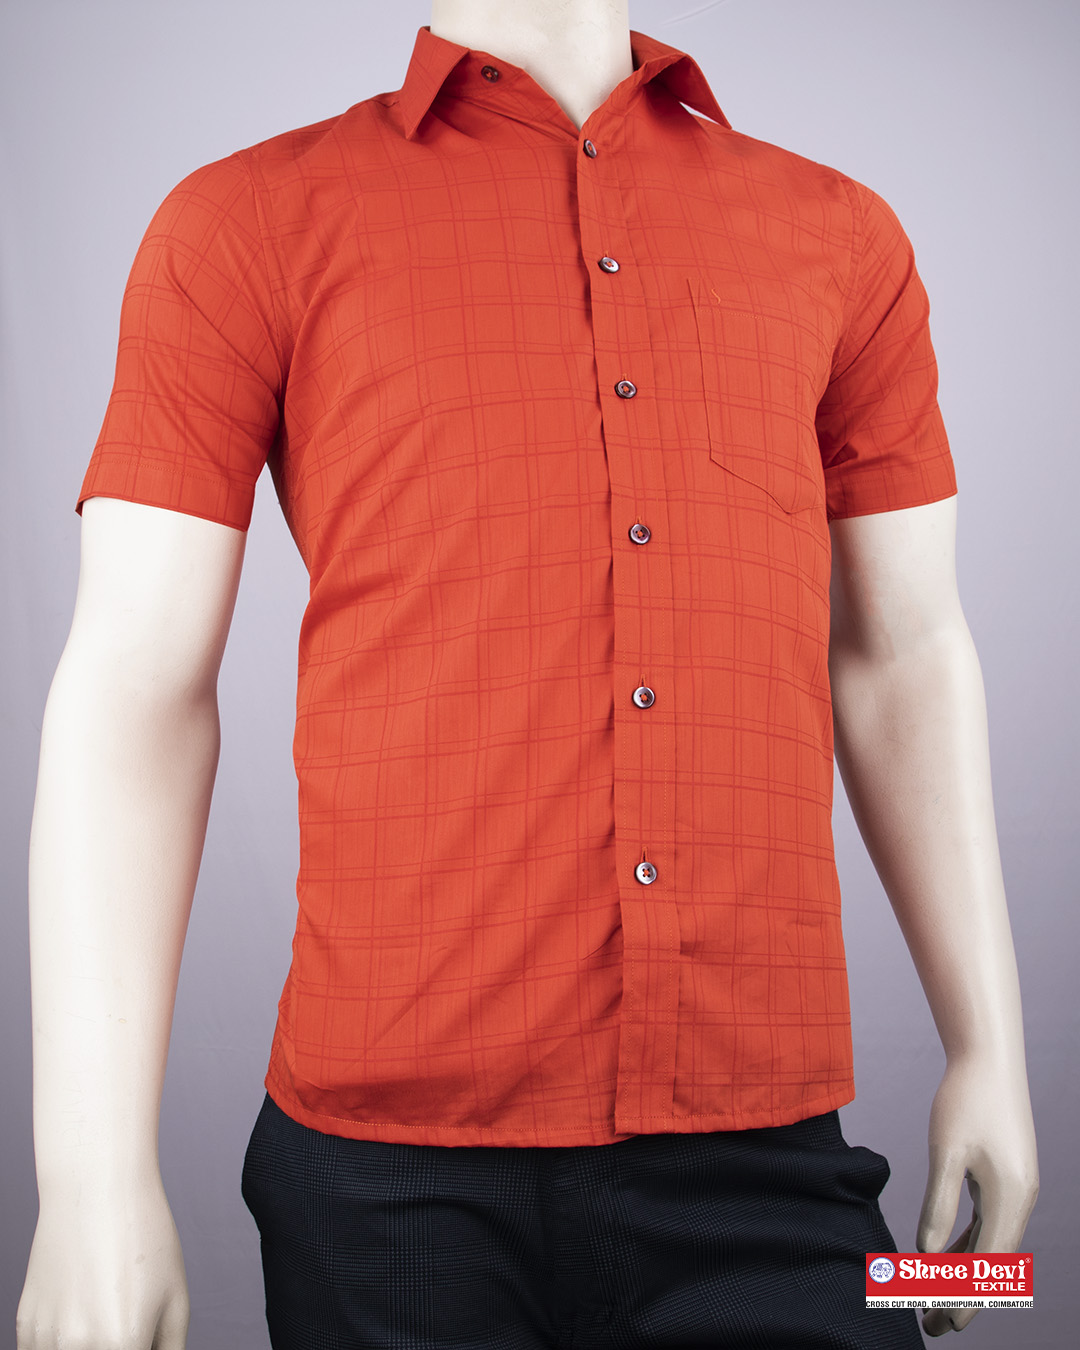 Tomato Orange Formal Half Sleeve Shirt